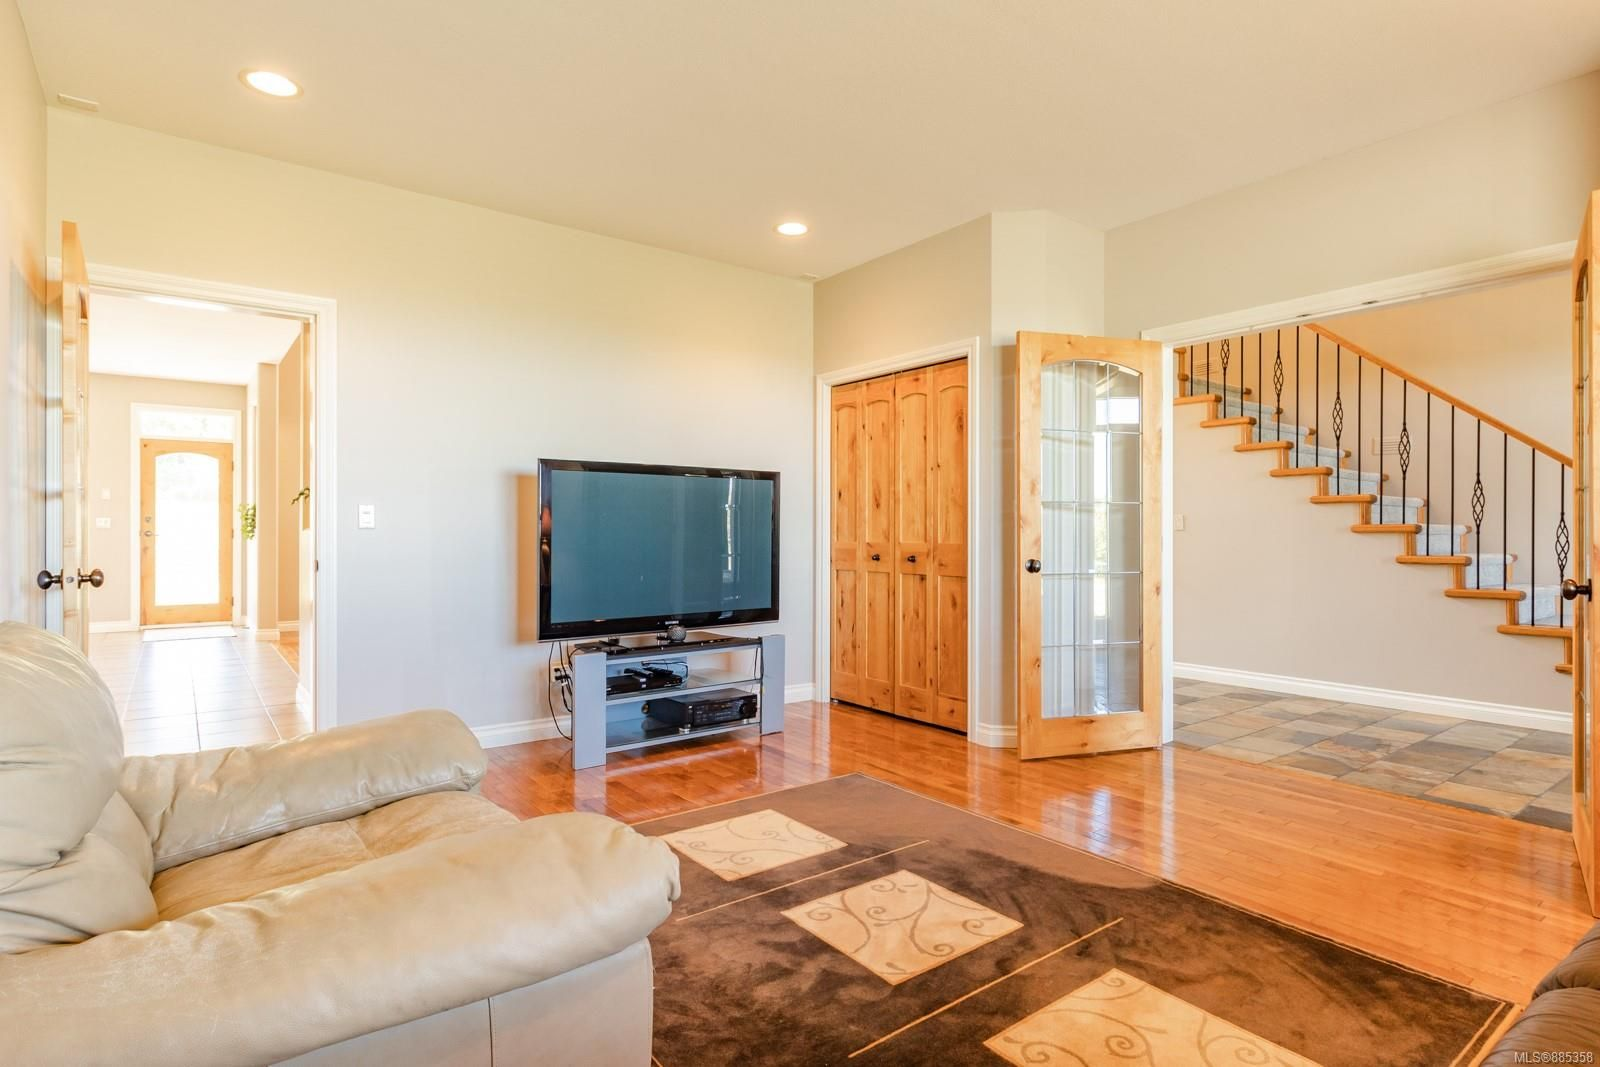 Photo 26: Photos: 2850 Peters Rd in : PQ Qualicum Beach House for sale (Parksville/Qualicum)  : MLS®# 885358